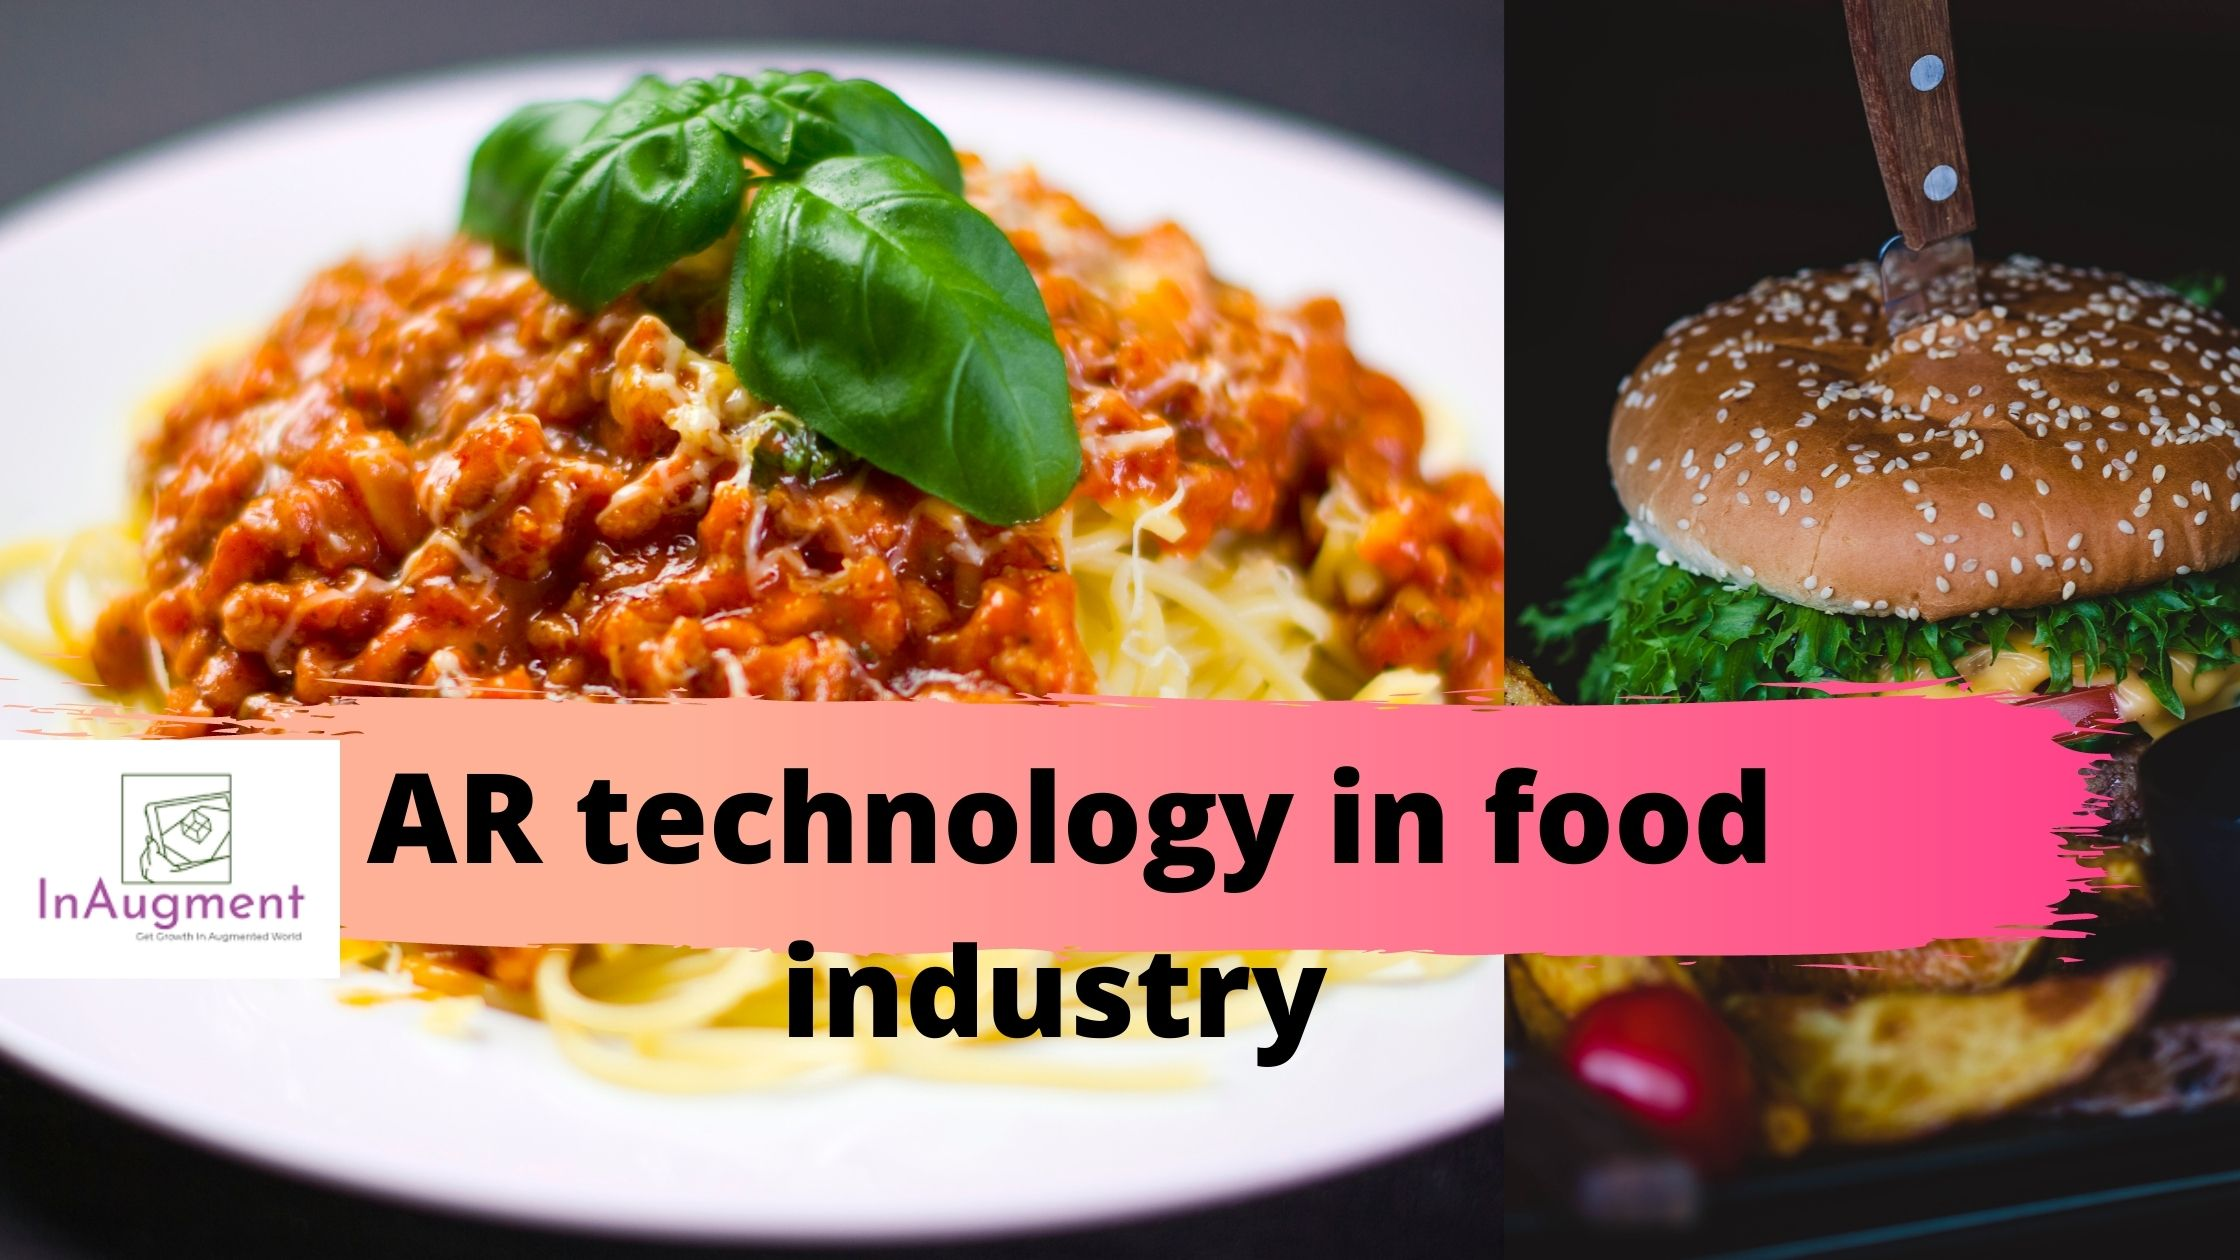 AR technology in food industry